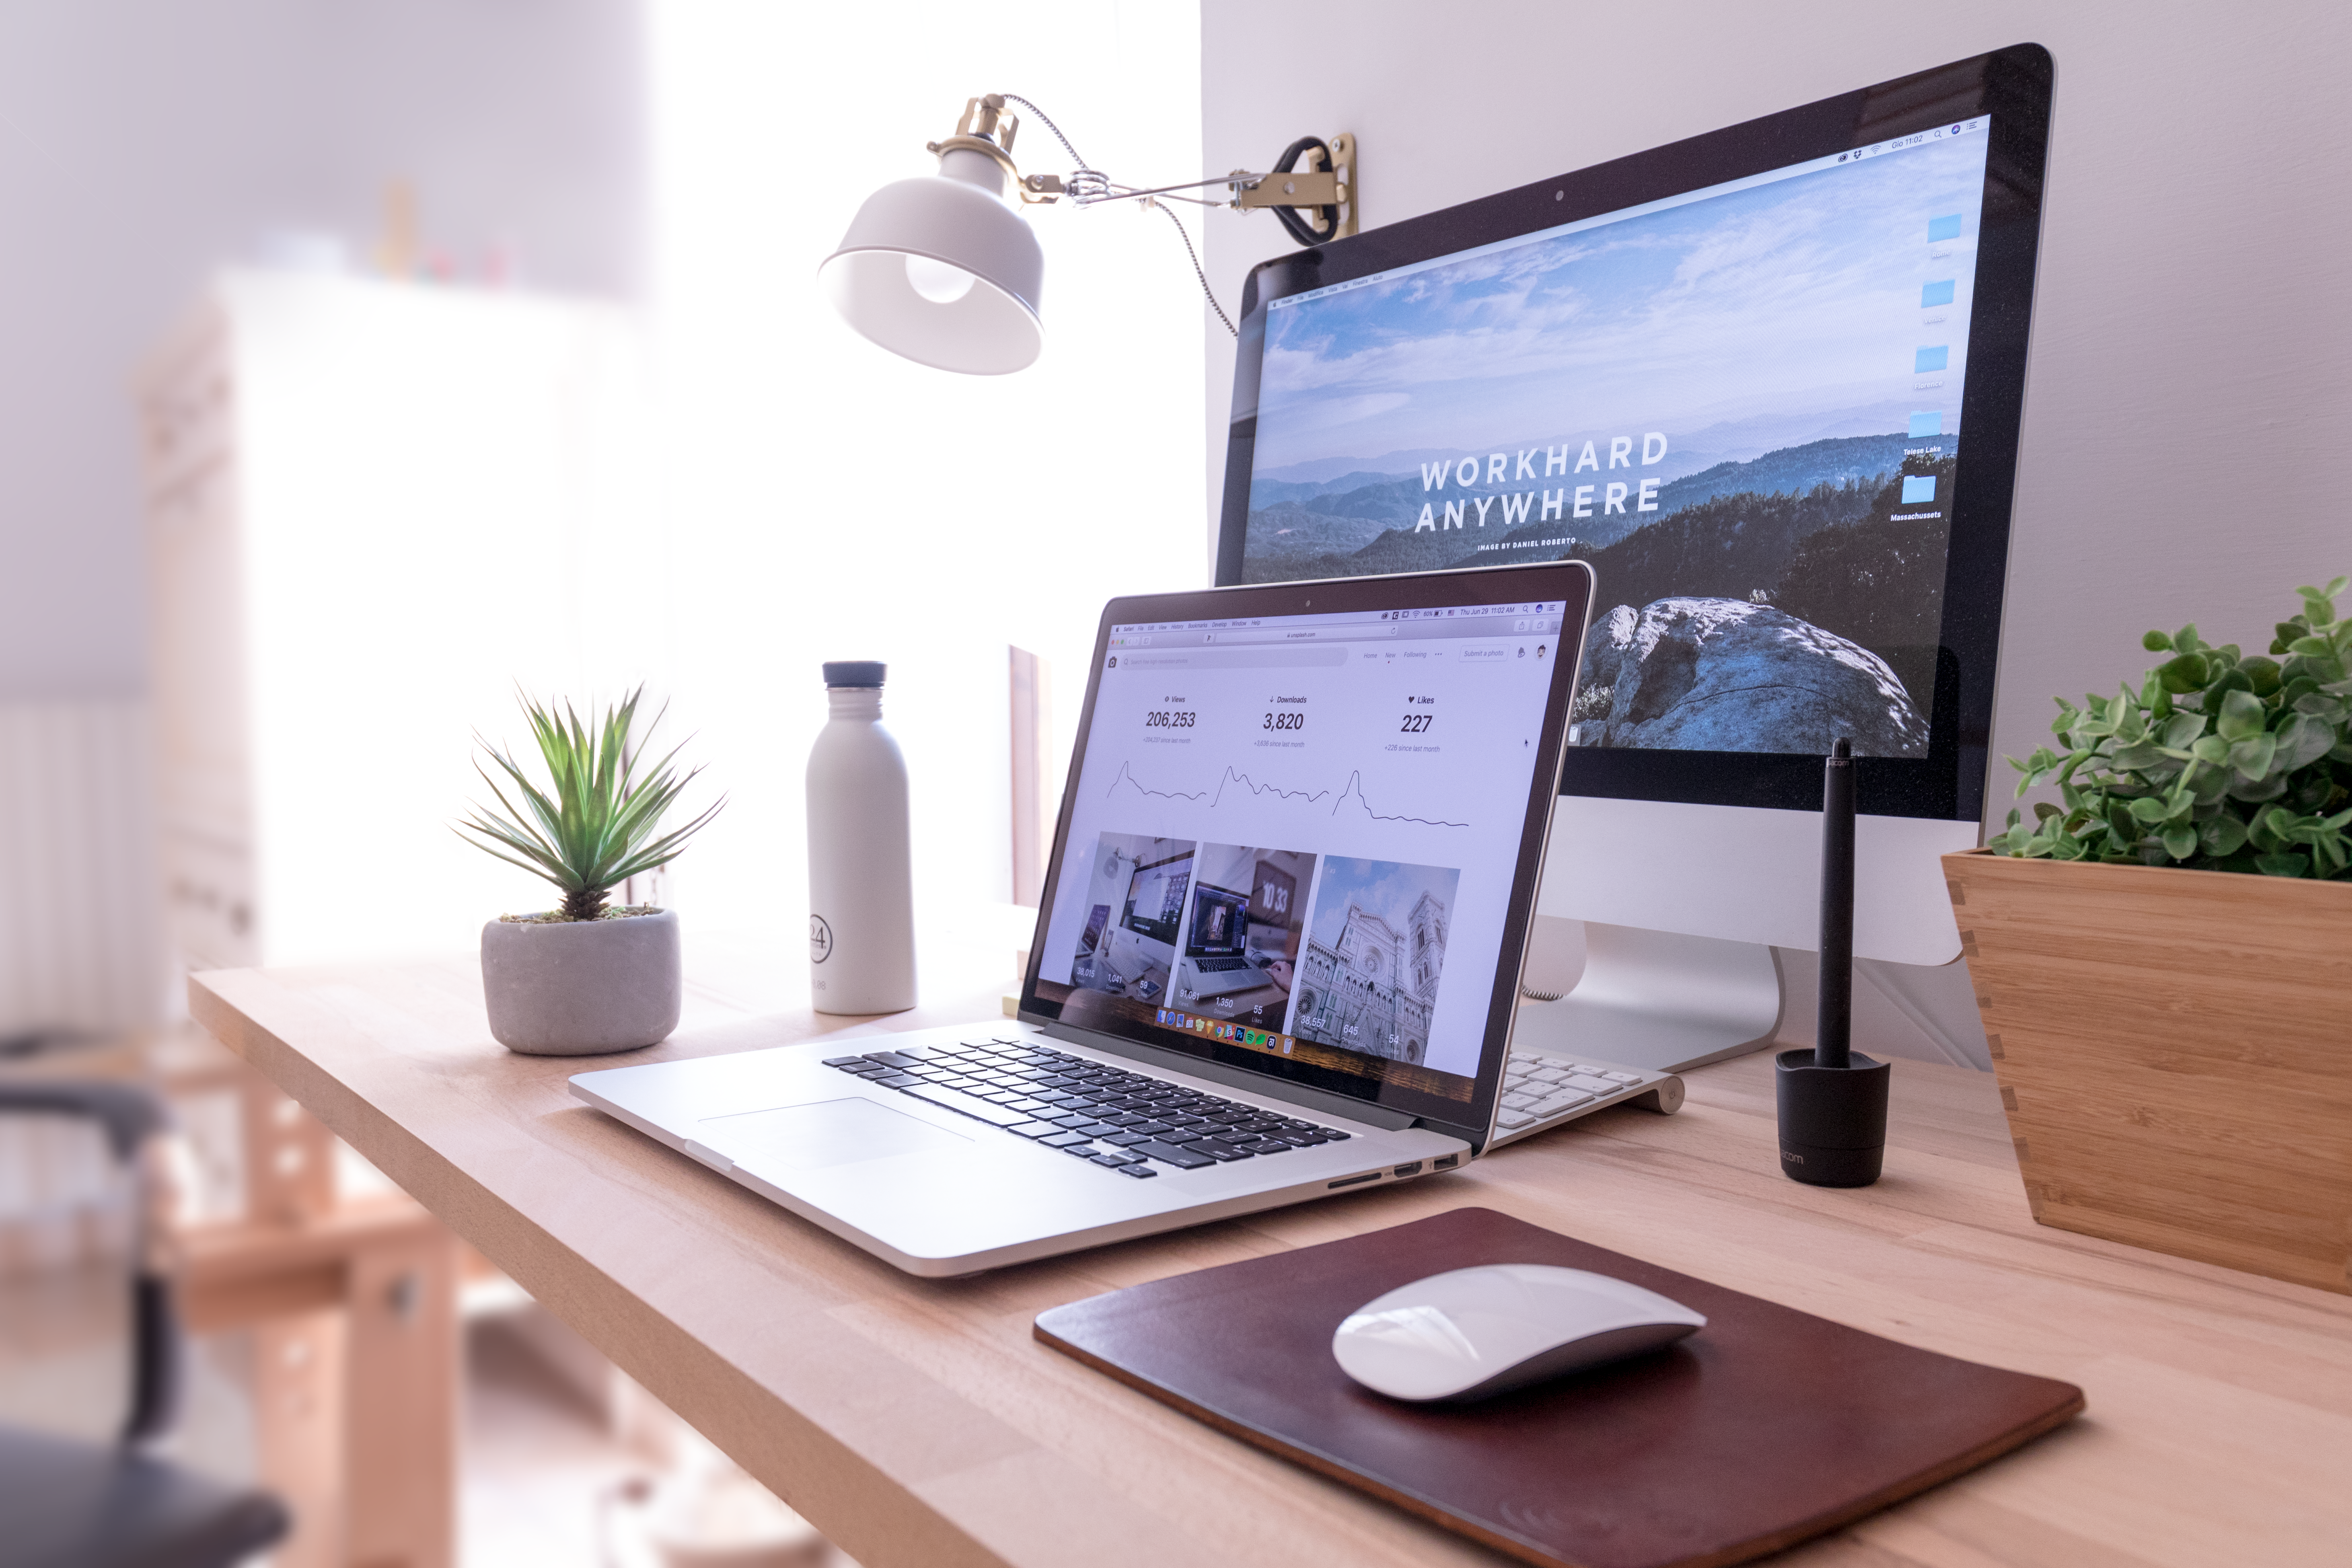 100 Office Pictures Download Free Images on Unsplash